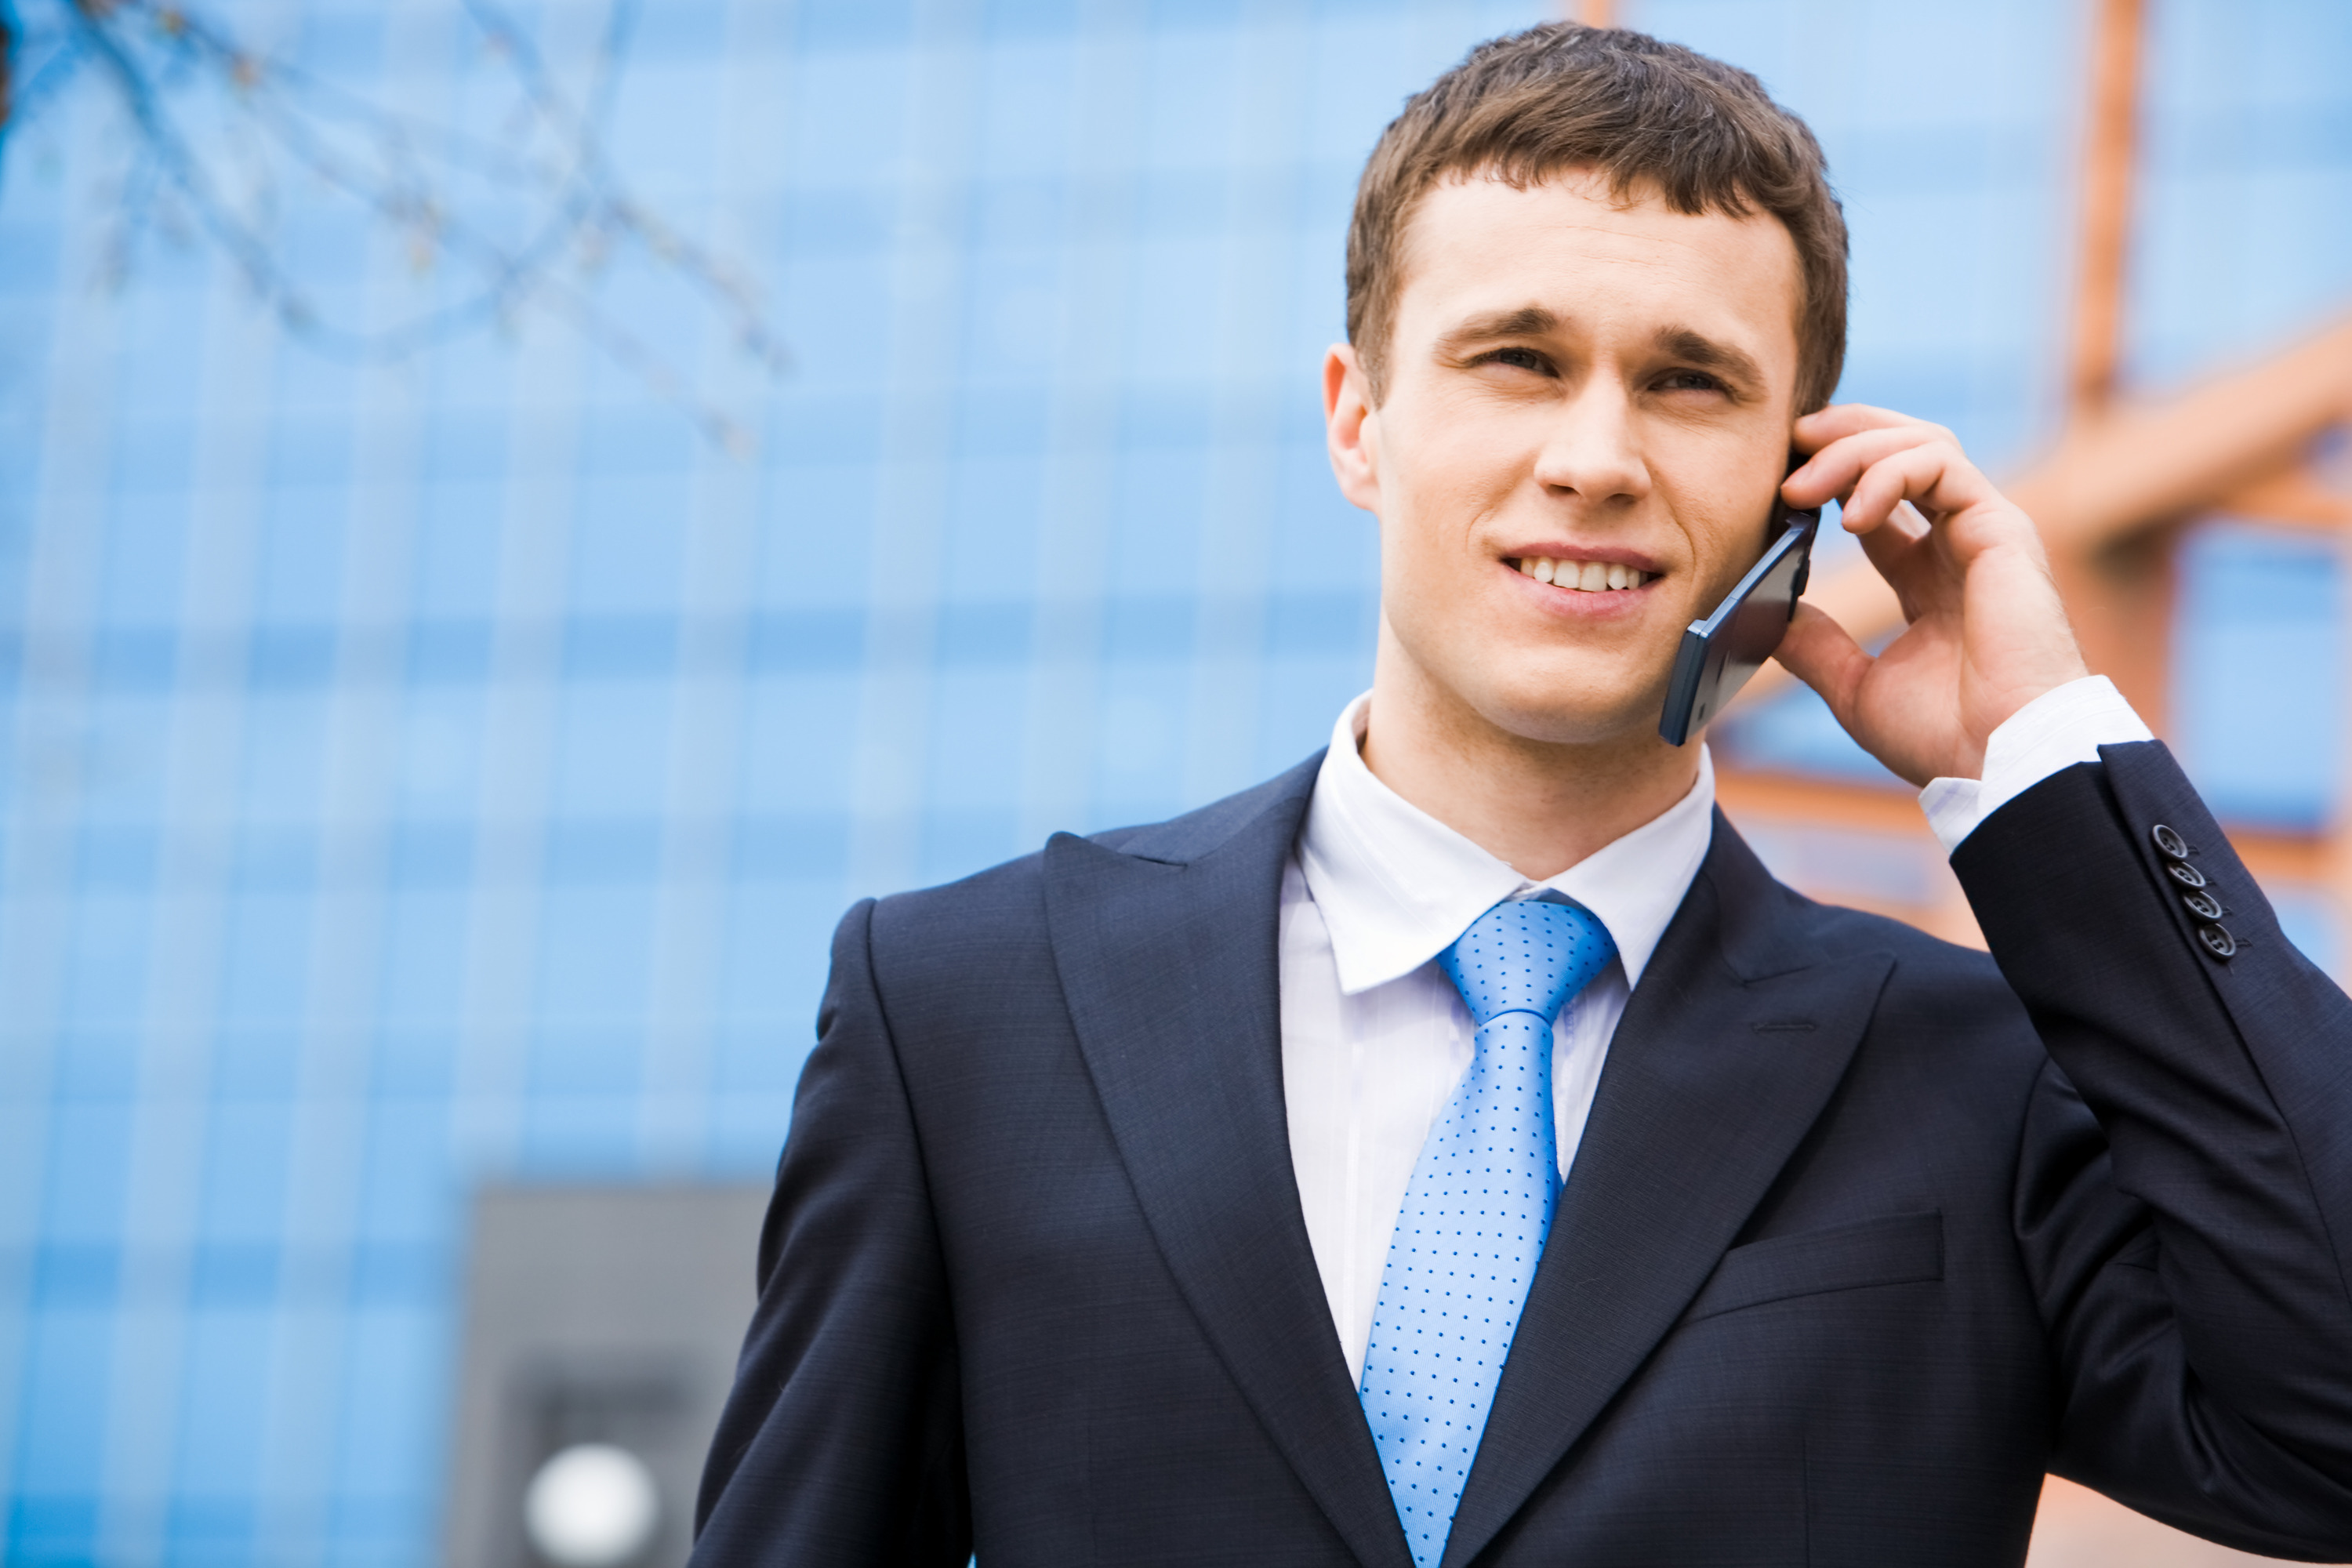 Portrait of successful young man calling on cellular phone outside